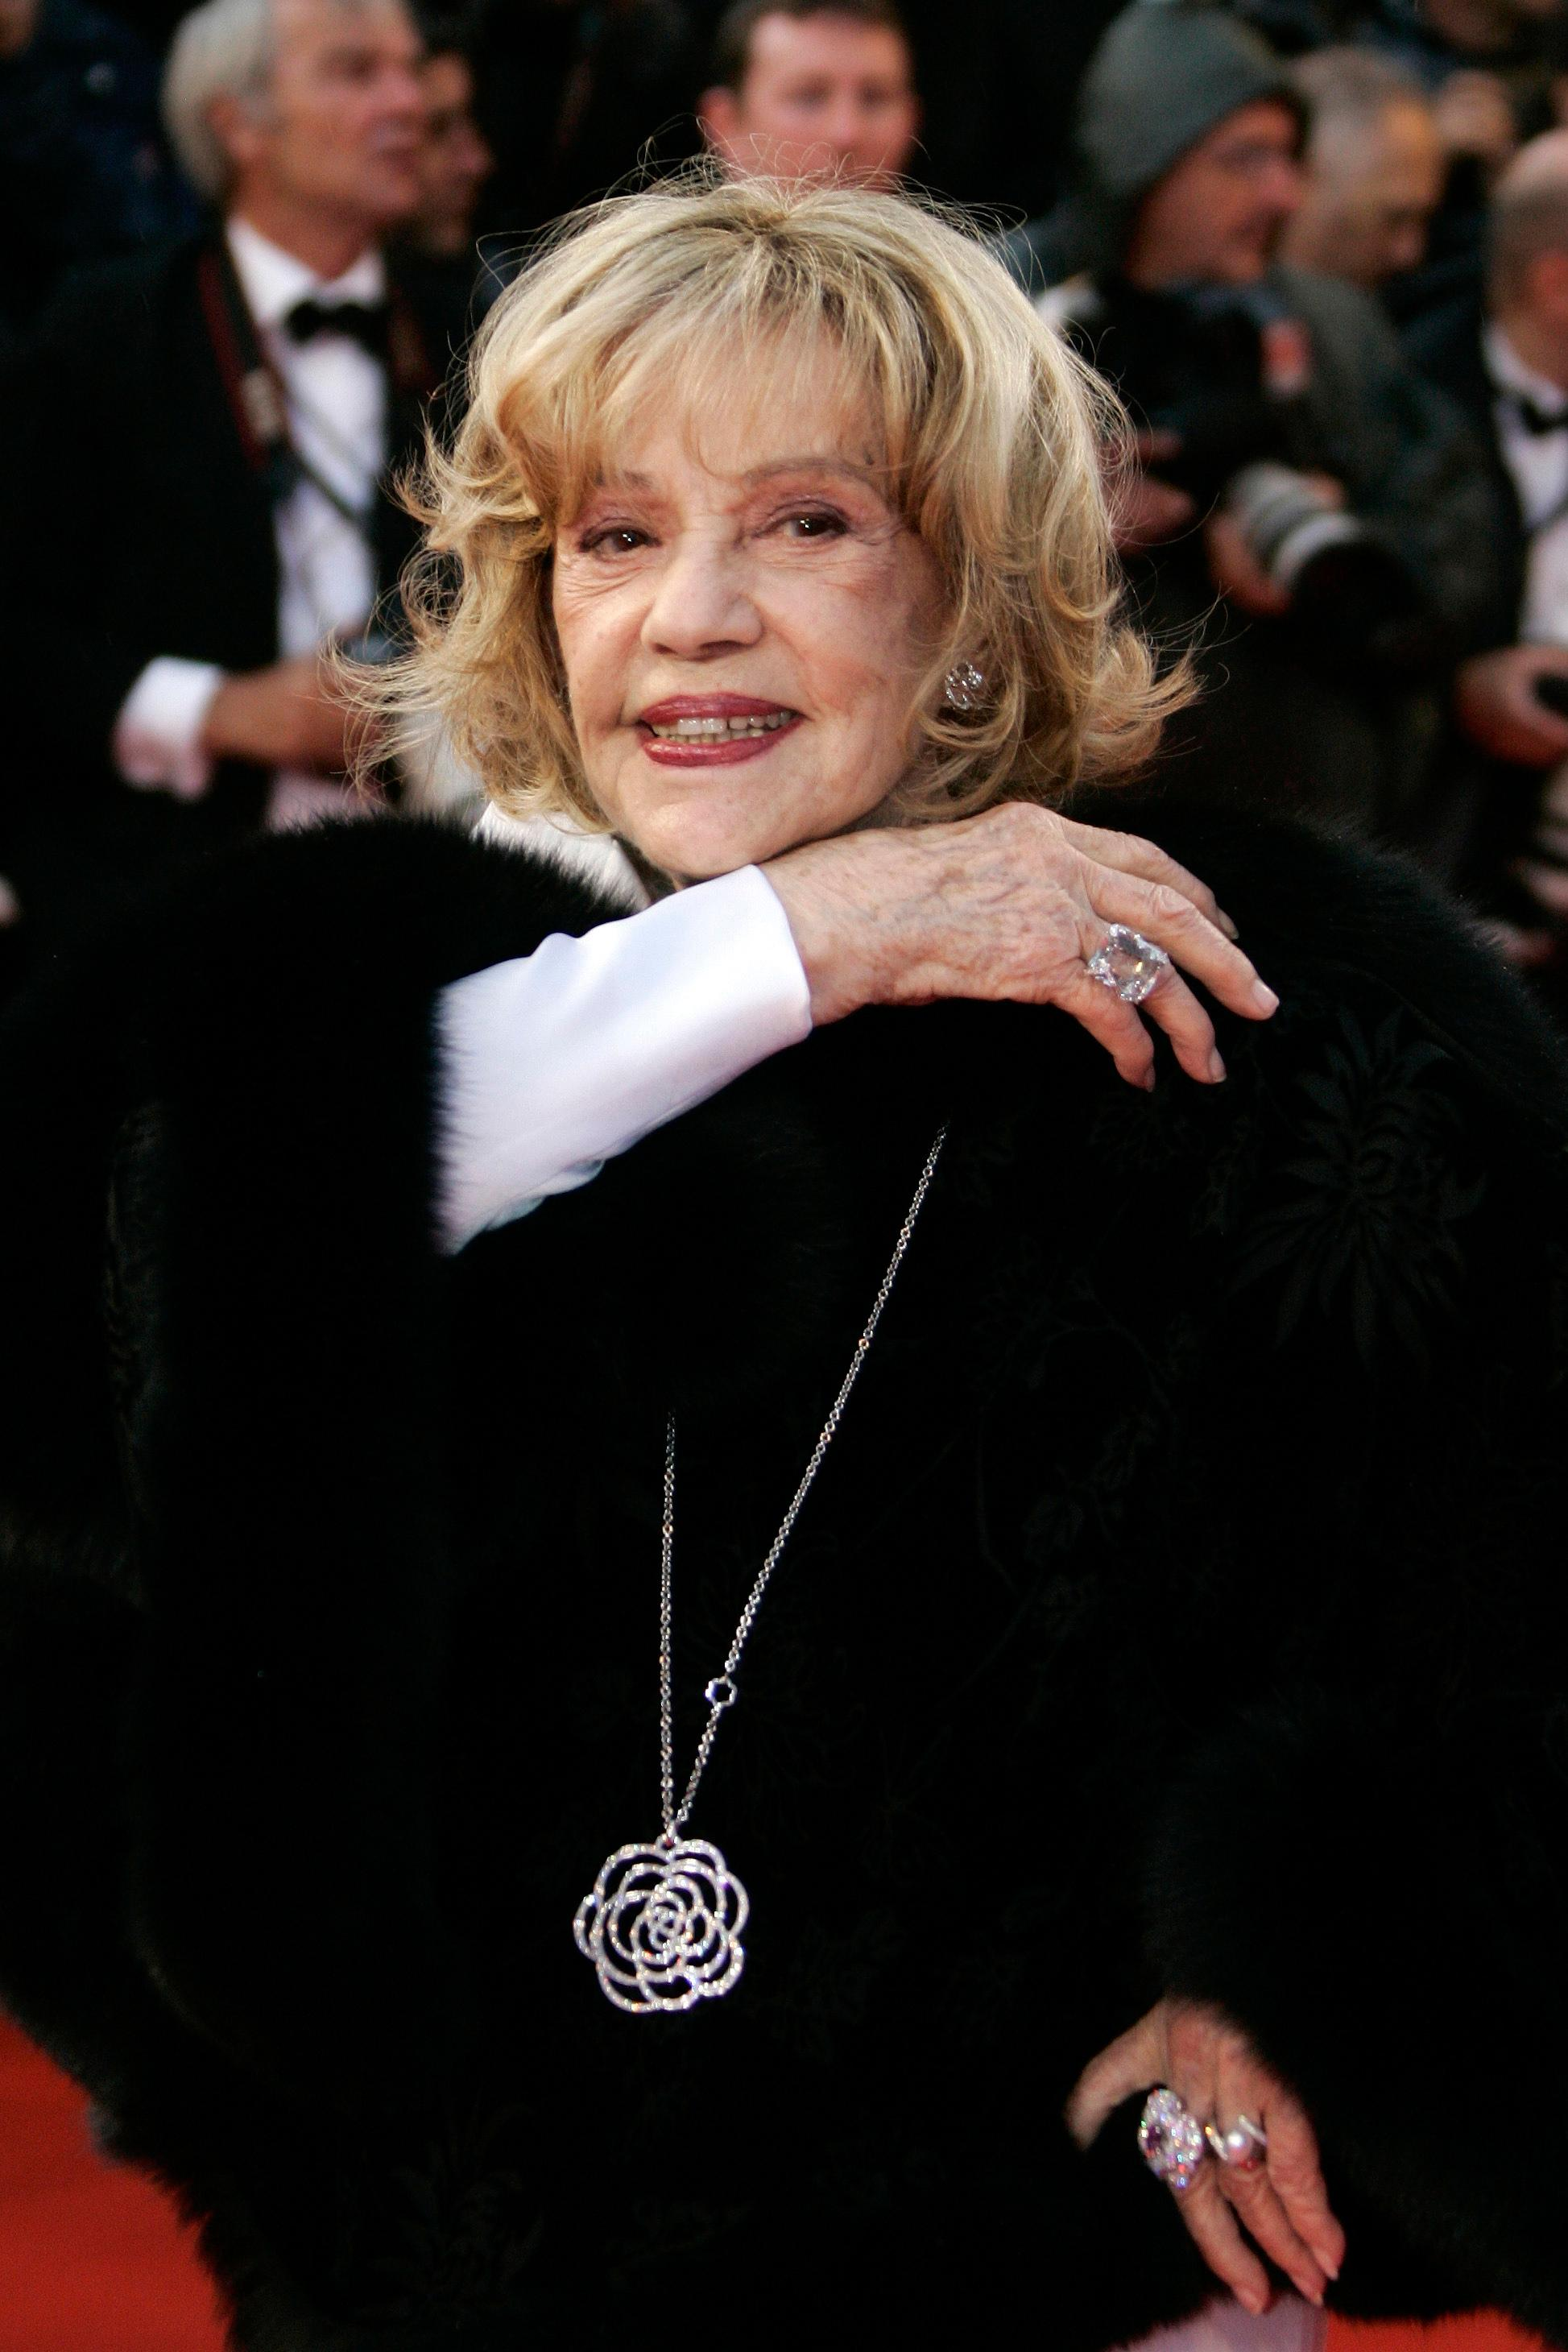 "FILE - In this Saturday, May 17, 2008 file photo French actress Jeanne Moreau arrives to the premiere of the film ""Vicky Cristina Barcelona"" during the 61st International film festival in Cannes, southern France. French actress Jeanne Moreau, whose seven-decade career included work with Francois Truffaut, Orson Welles, Wim Wenders and other acclaimed directors, has died aged 89 it was announced Monday July 31, 2017. (AP Photo/Francois Mori, File)"